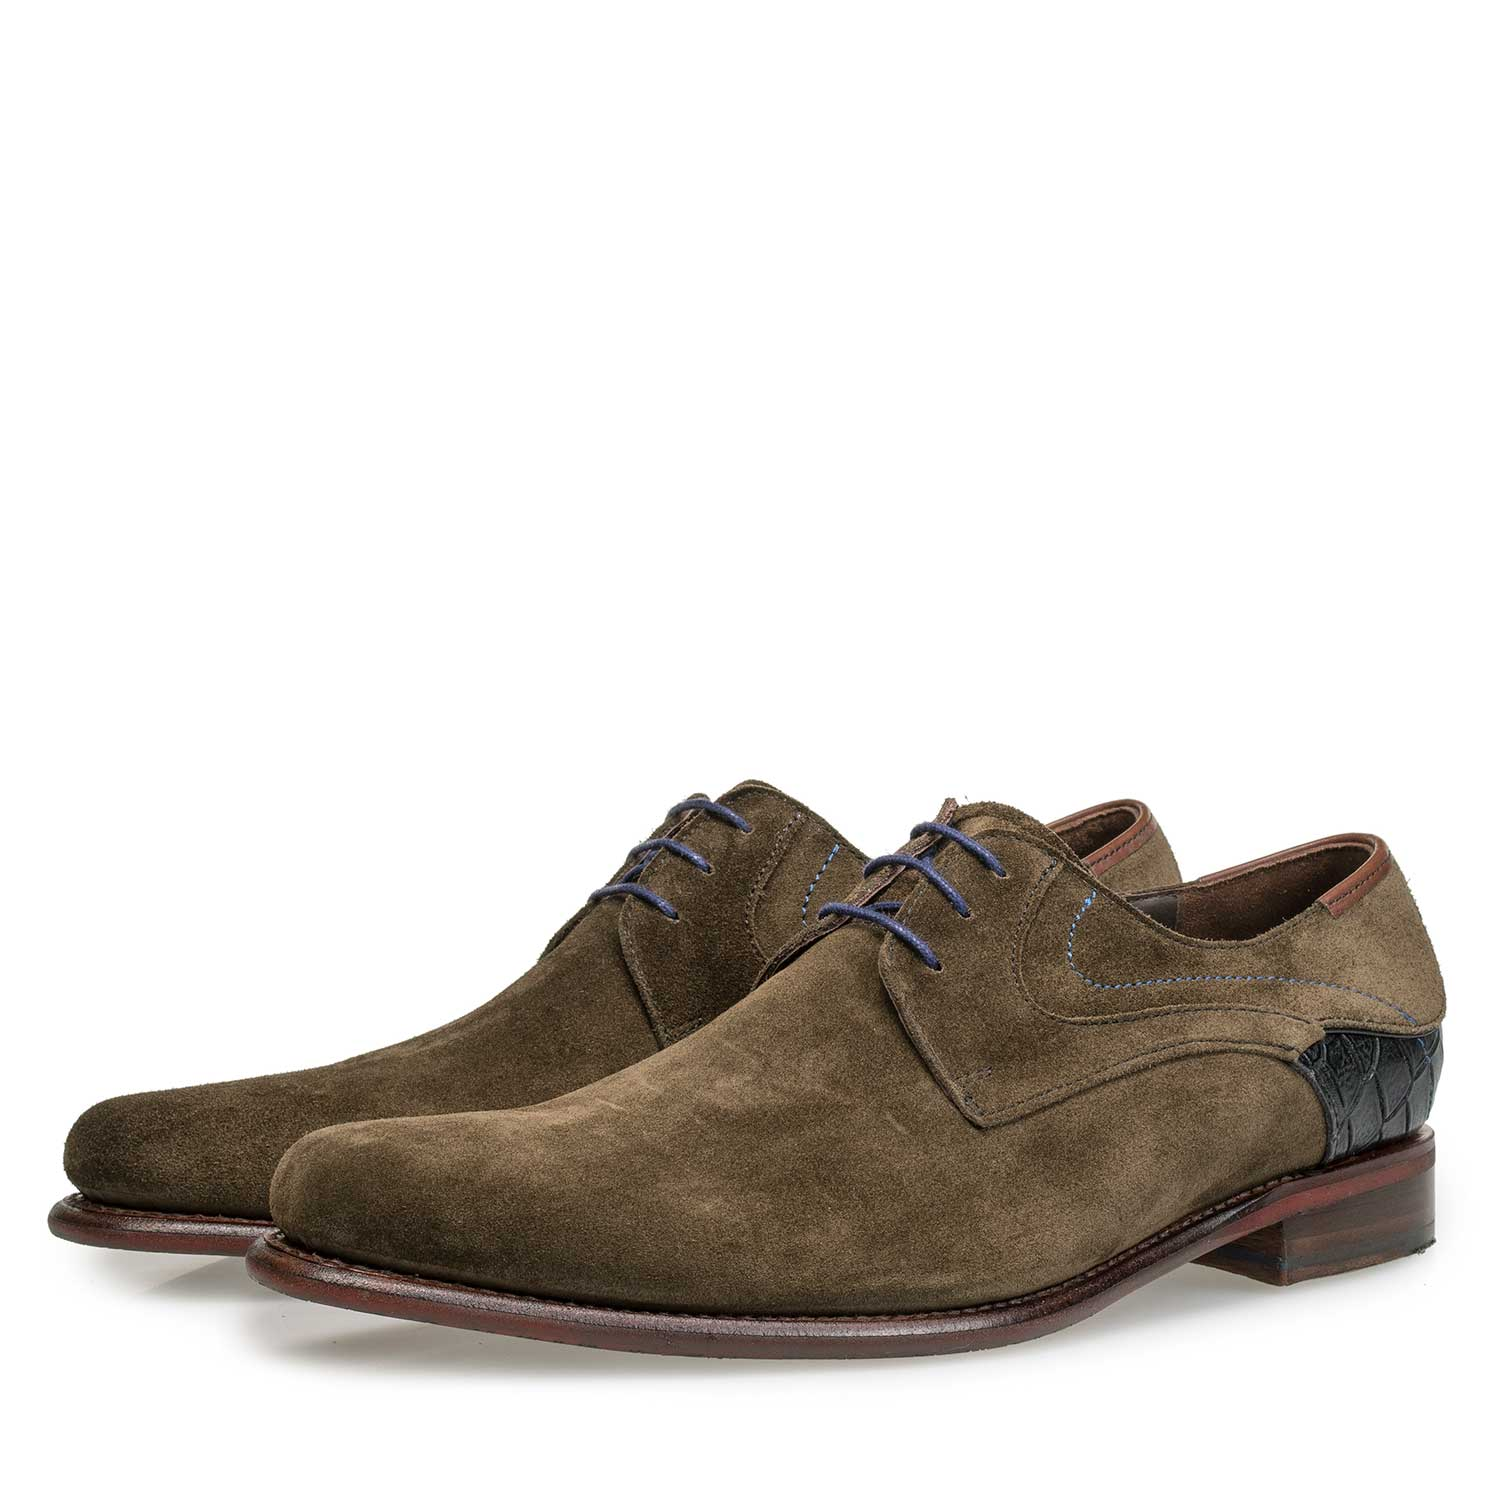 18079/01 - Olive green calf's suede leather lace shoe